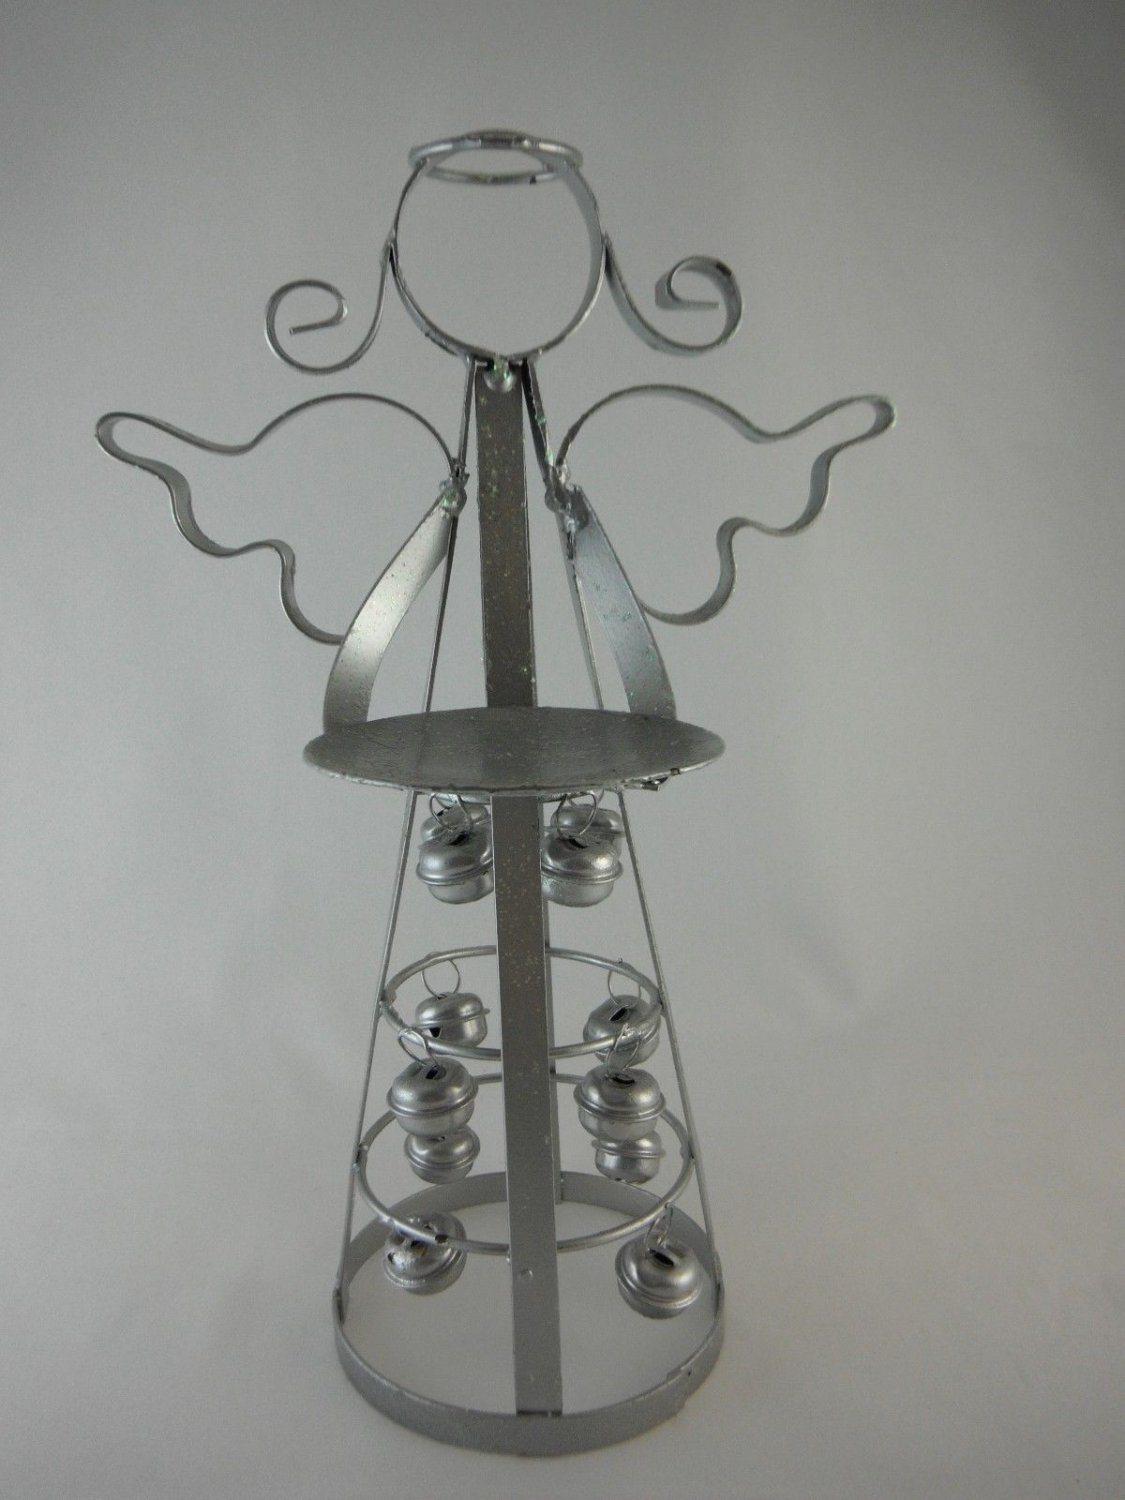 Metal Angel Candle Holder Decorative Bells Skirt Christmas or Everyday tblyn1